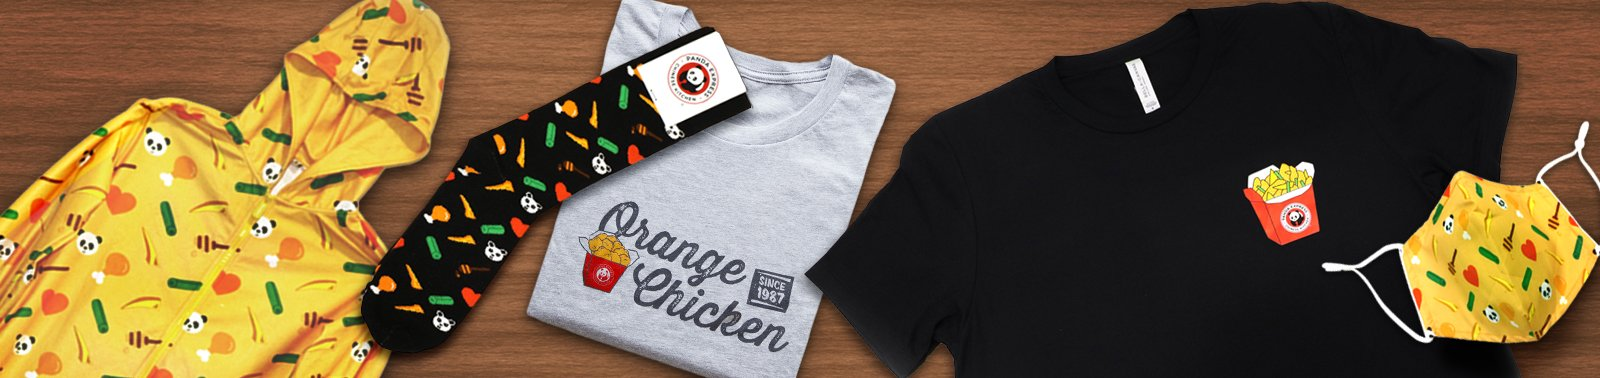 Mugs, Shirts, Onesies and more at the Panda Express Swag Shop